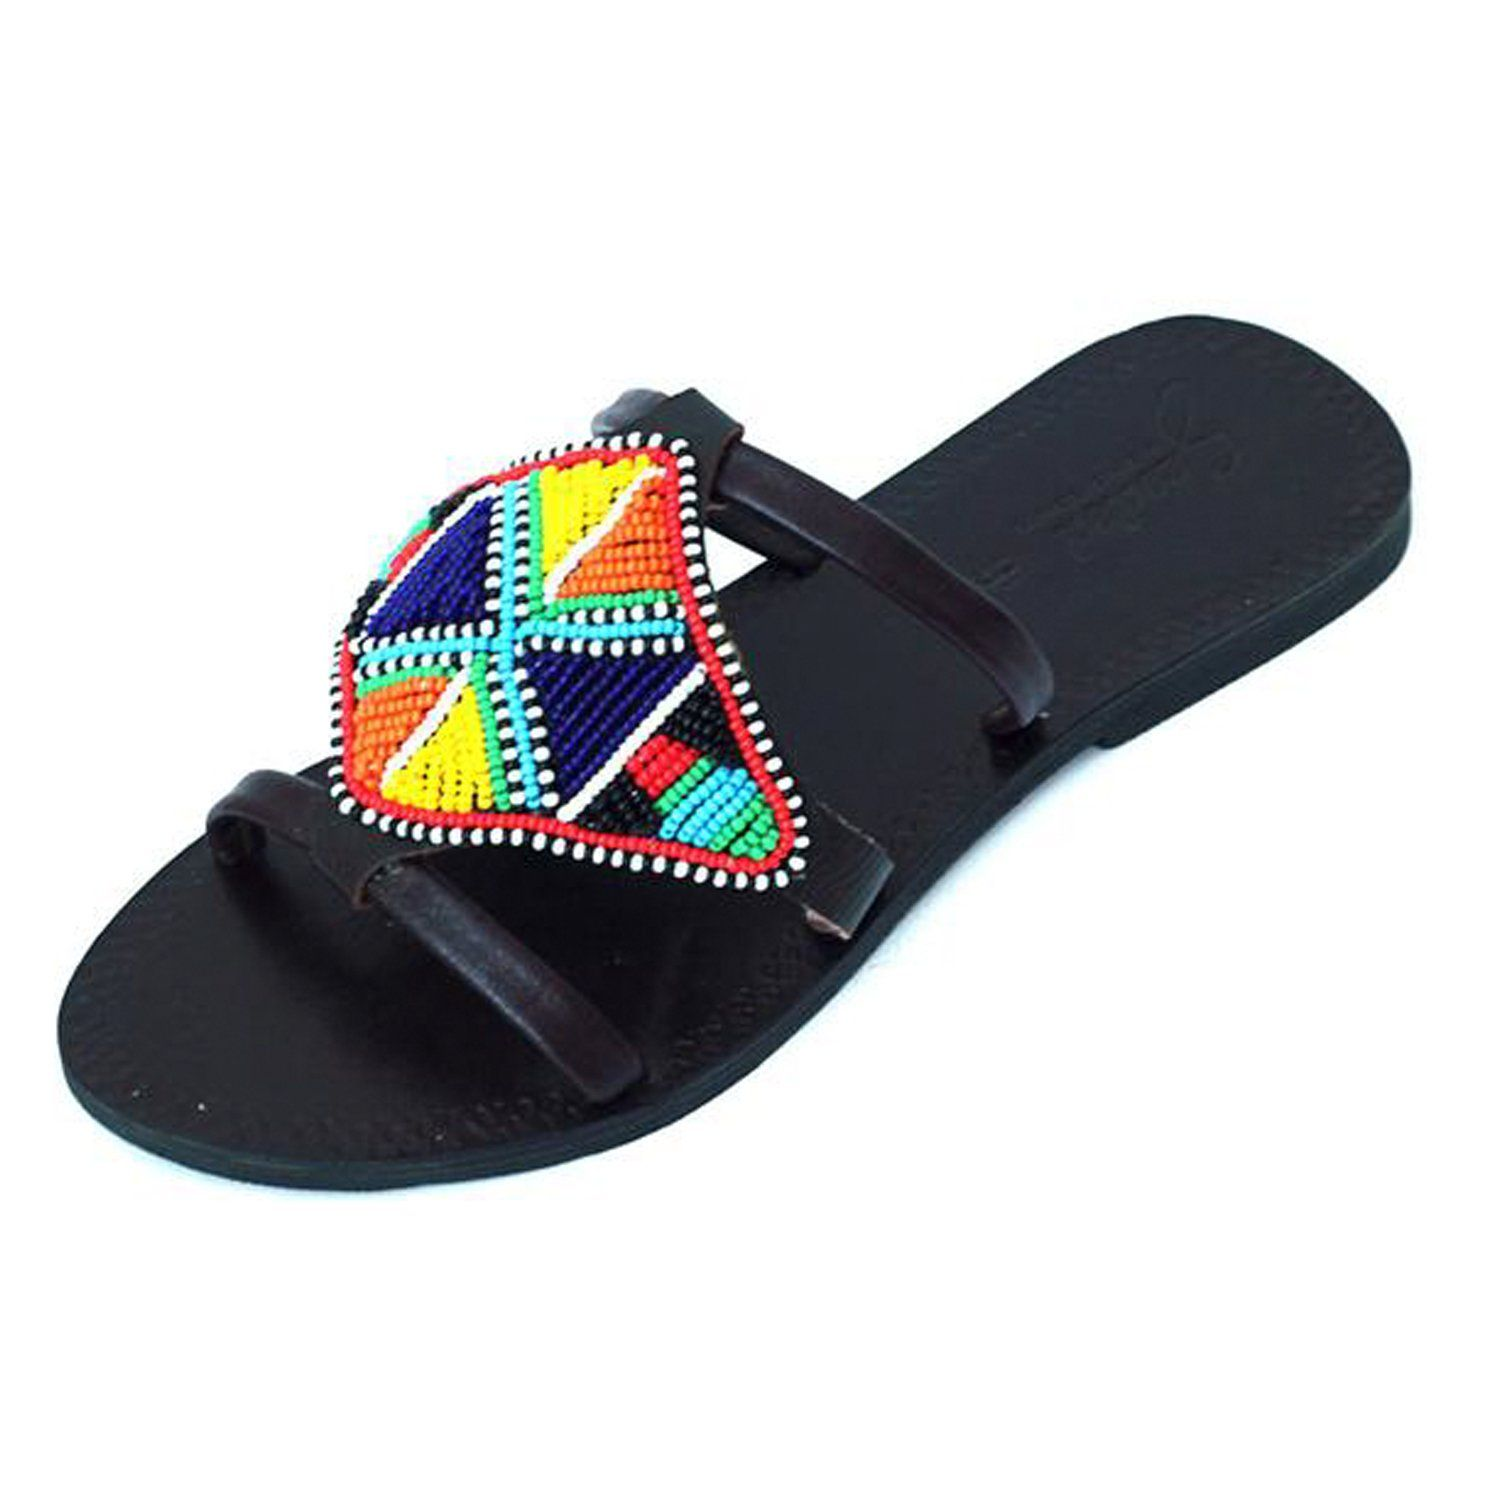 252d9d657de2 Fair trade sandals ethically handmade by empowered artisans in East Africa.